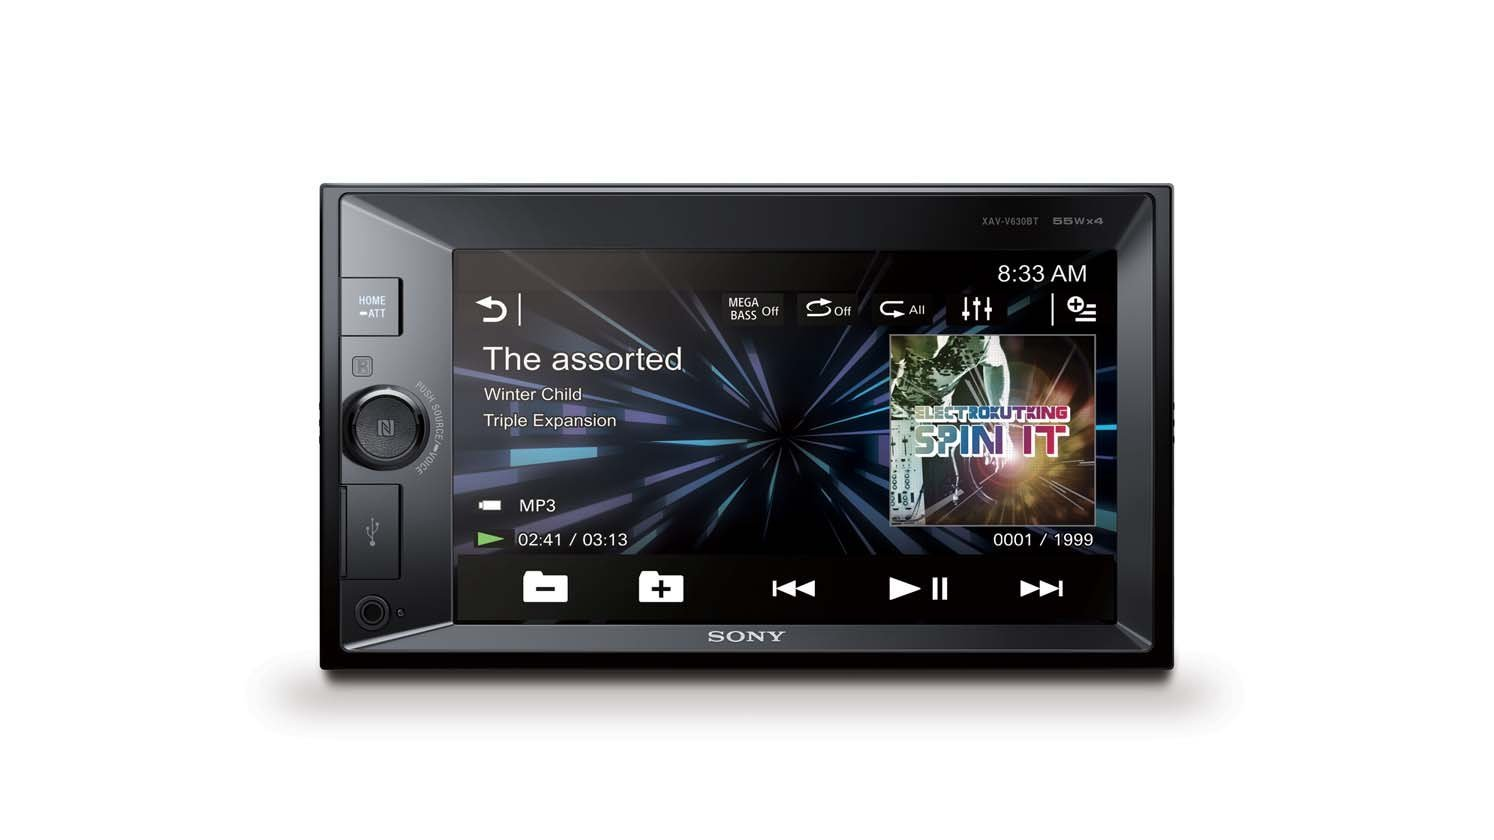 Sony autorádio XAV-V630BT multimediální, dot. display, XVid/MP3, USB/A